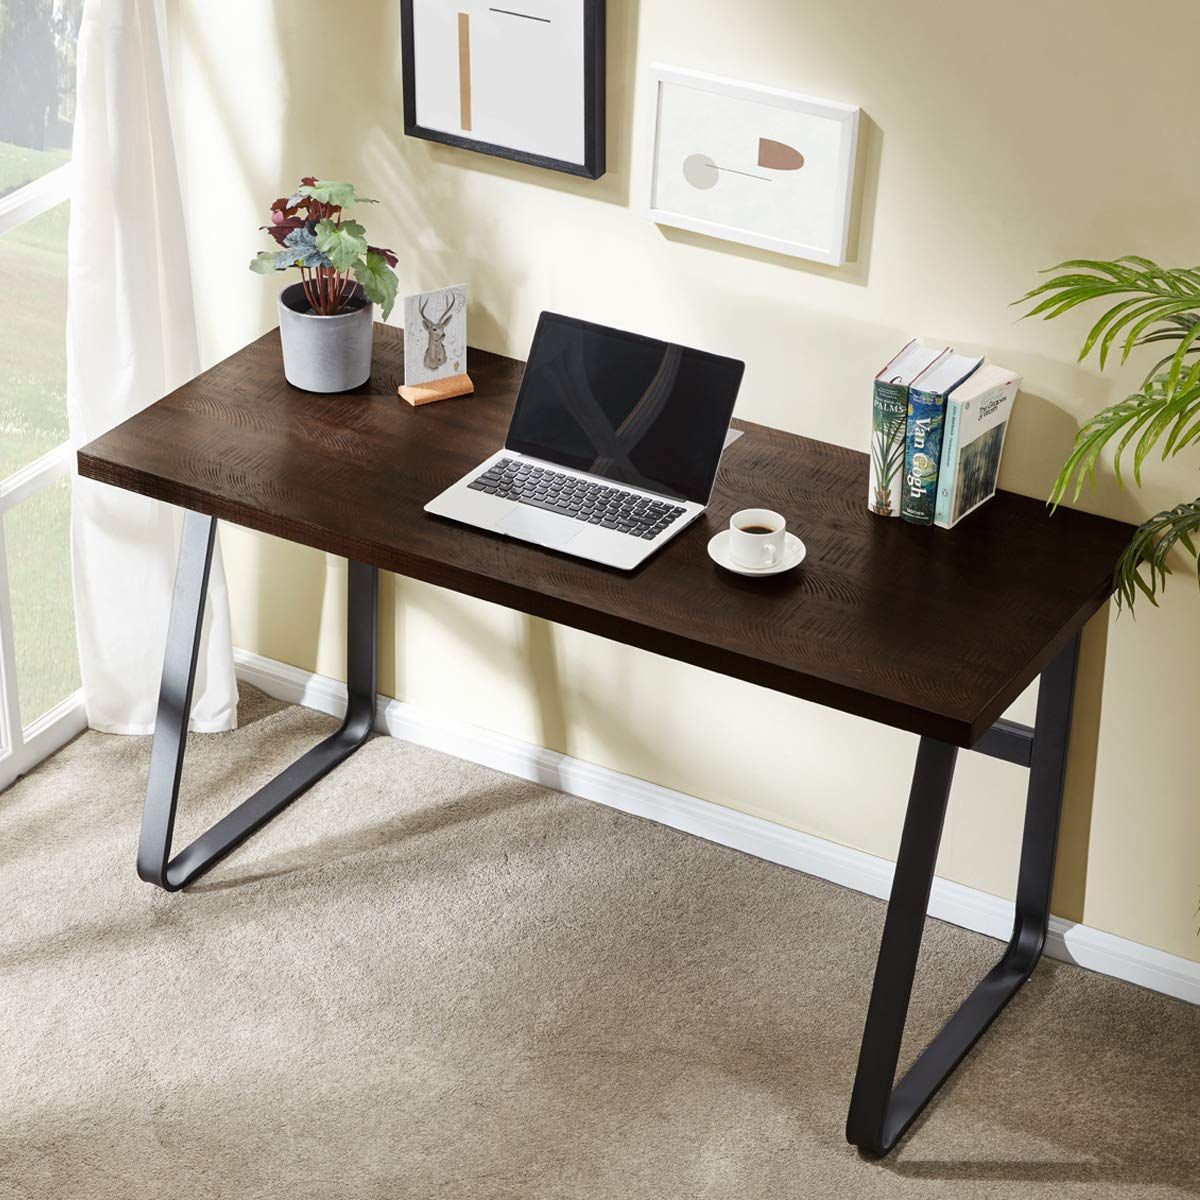 dyh vintage computer desk, wood and metal writing desk, pc